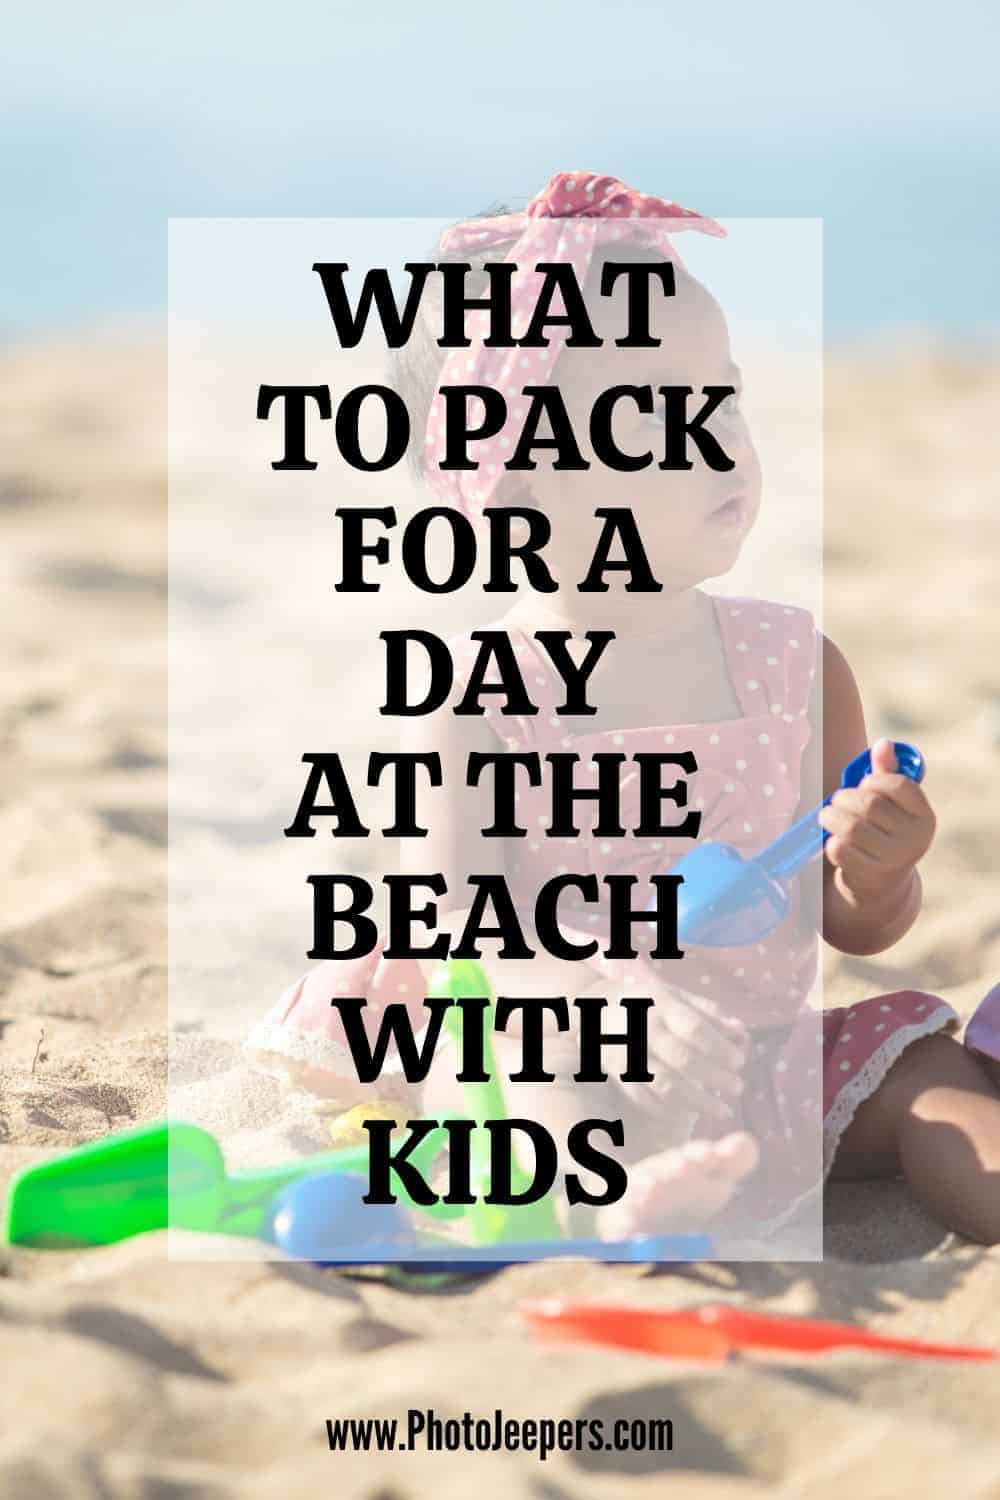 It's so fun taking babies, toddlers and bigger kids to the beach. There's something so special about a family day out with the sea and sand. However, if you're not prepared, taking babies to the beach can quickly turn into a sand covered nightmare! #beach #beachvacation #familytravel #photojeepers